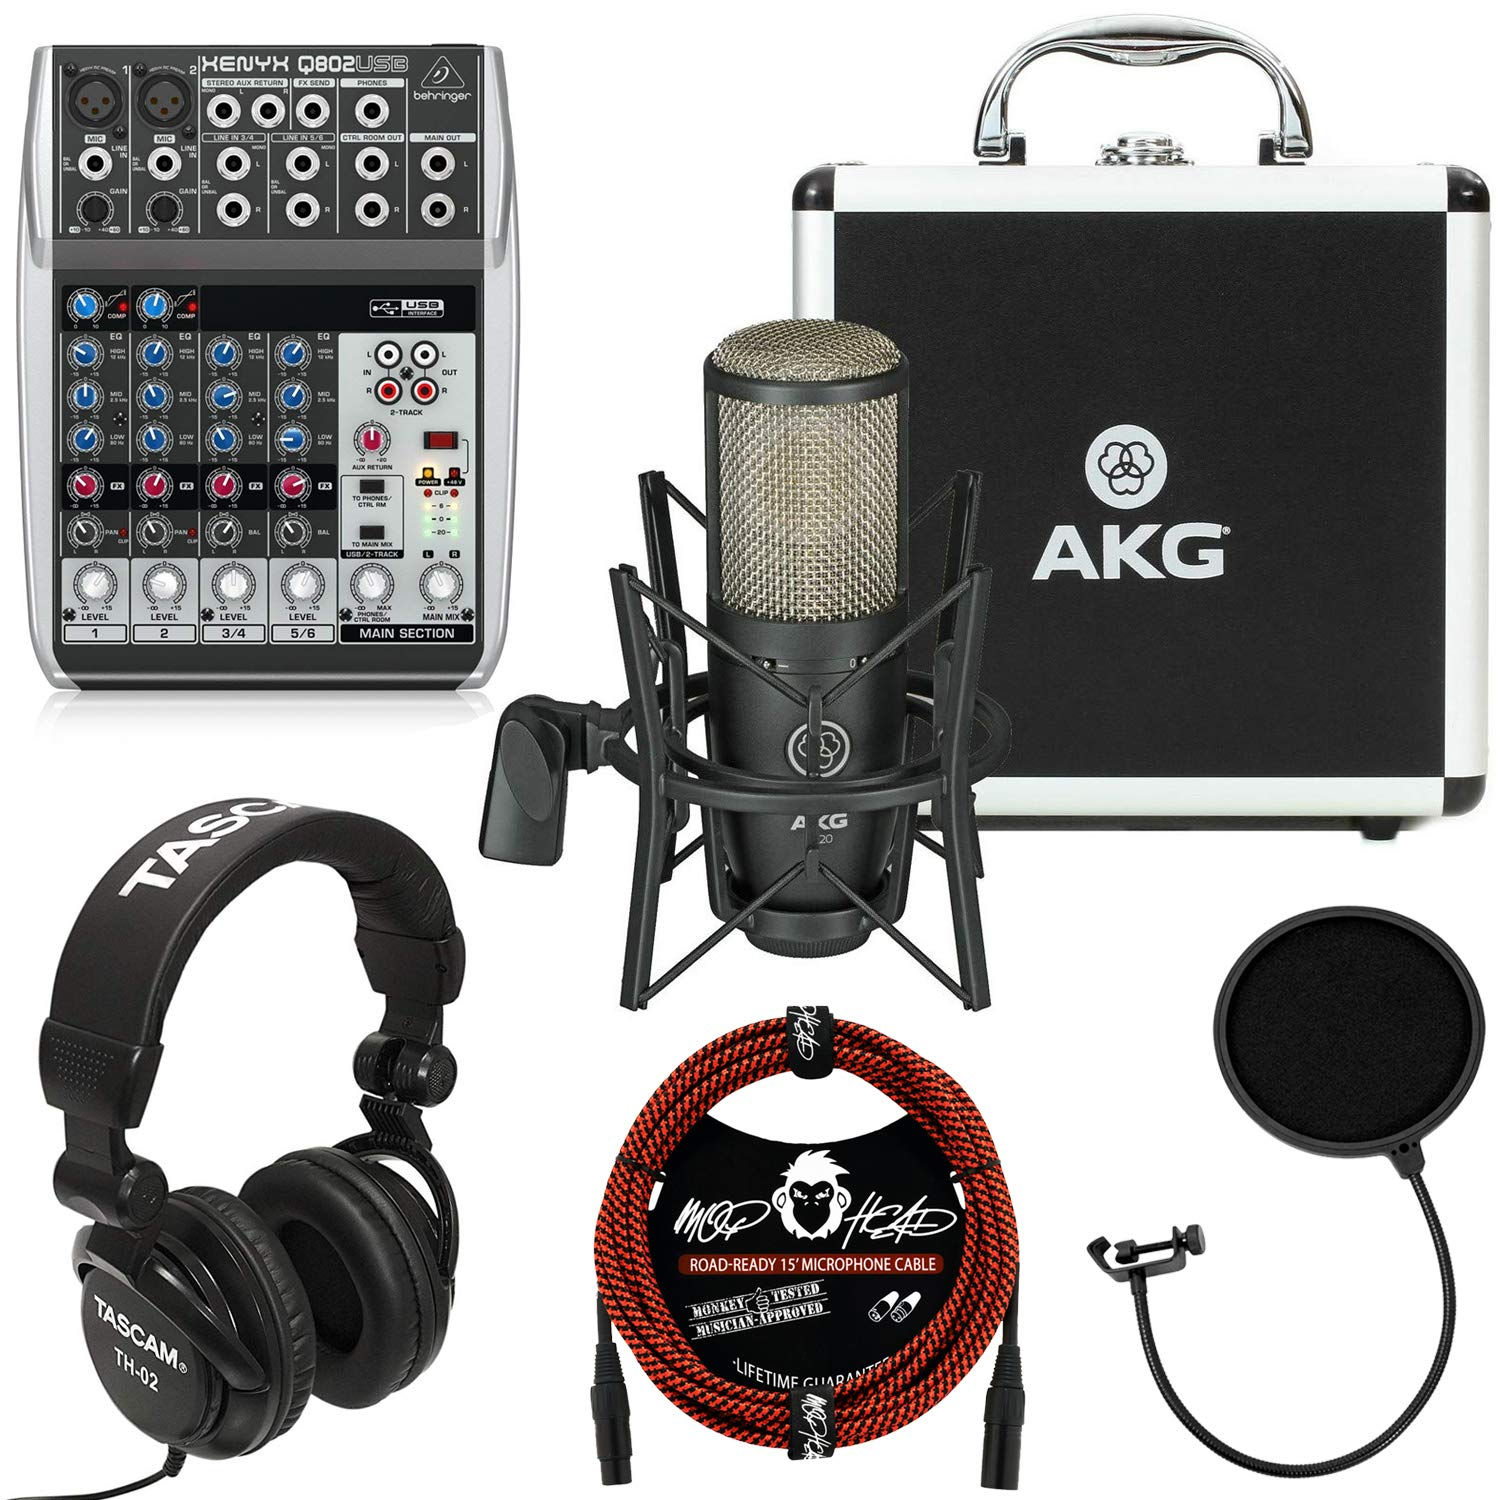 AKG Project Studio P220 Large-Diaphragm Cardioid Condenser Microphone Bundle with Behringer Xenyx Q802USB Mixer with USB, Tascam TH-02 Closed Back Studio Headphones and Accessories (4 Items) by AKG